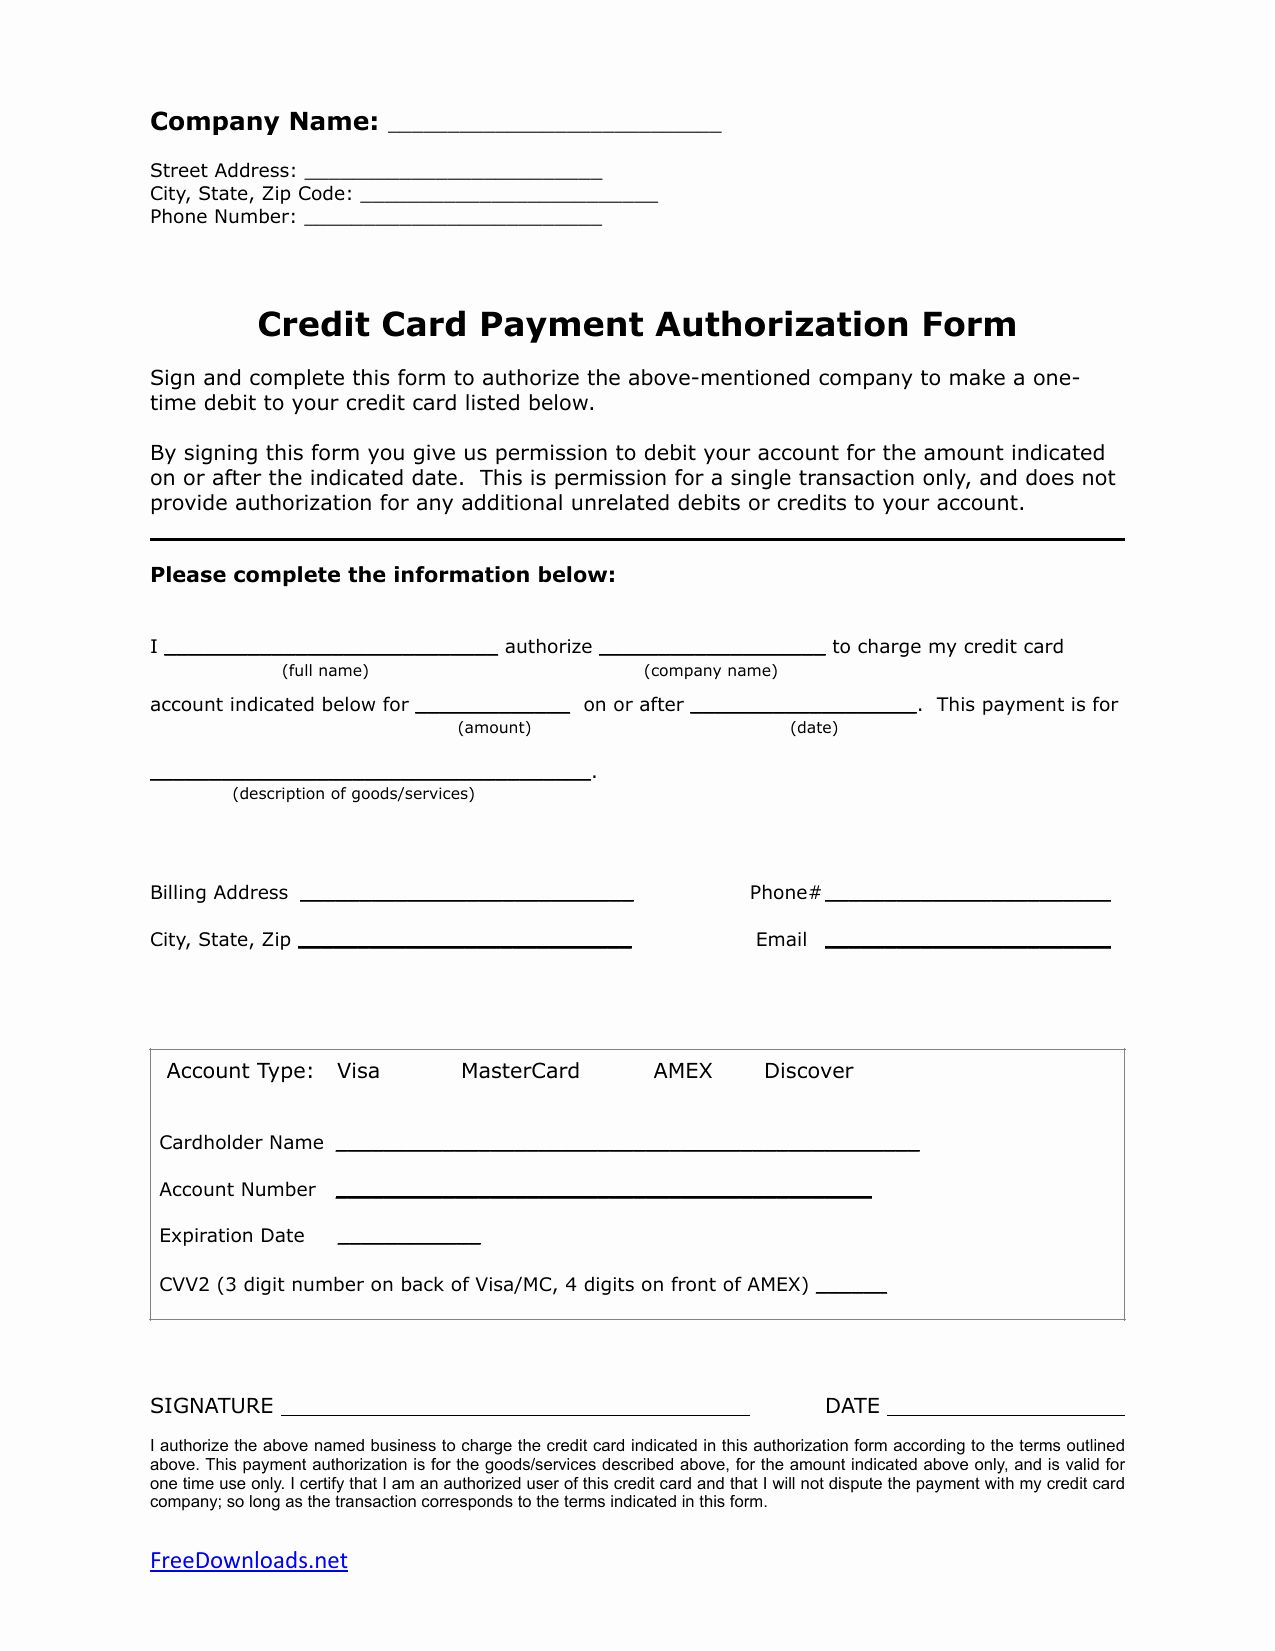 Payment Authorization Form Template Luxury Download E 1 Time Credit Card Authorization Payment Credit Card Pictures Credit Card Approval Credit Card